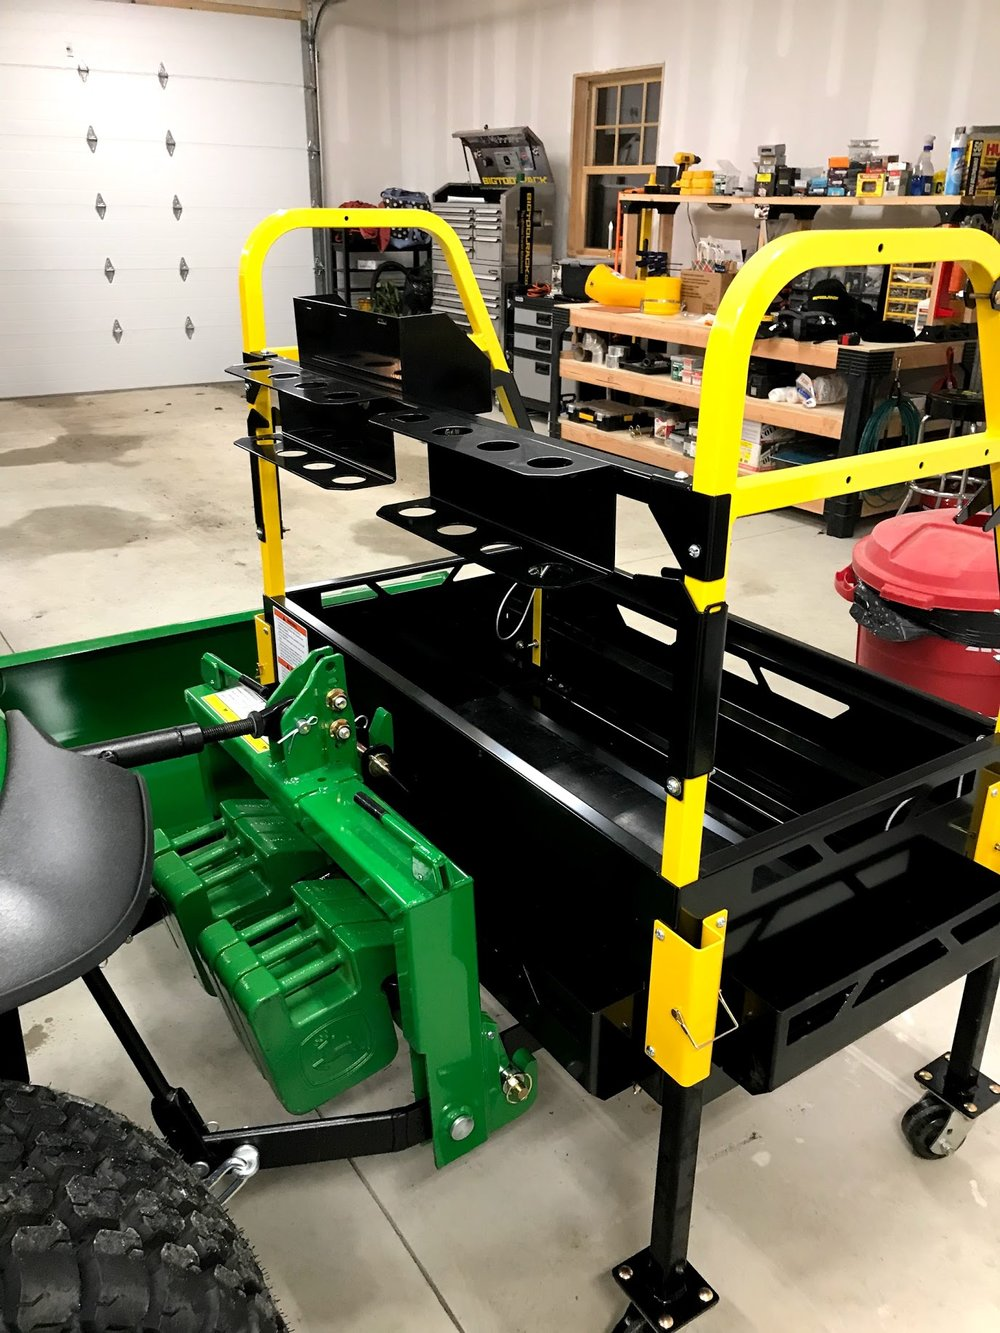 Bigtoolrack with John Deere Imatch and suitcase weight bracket